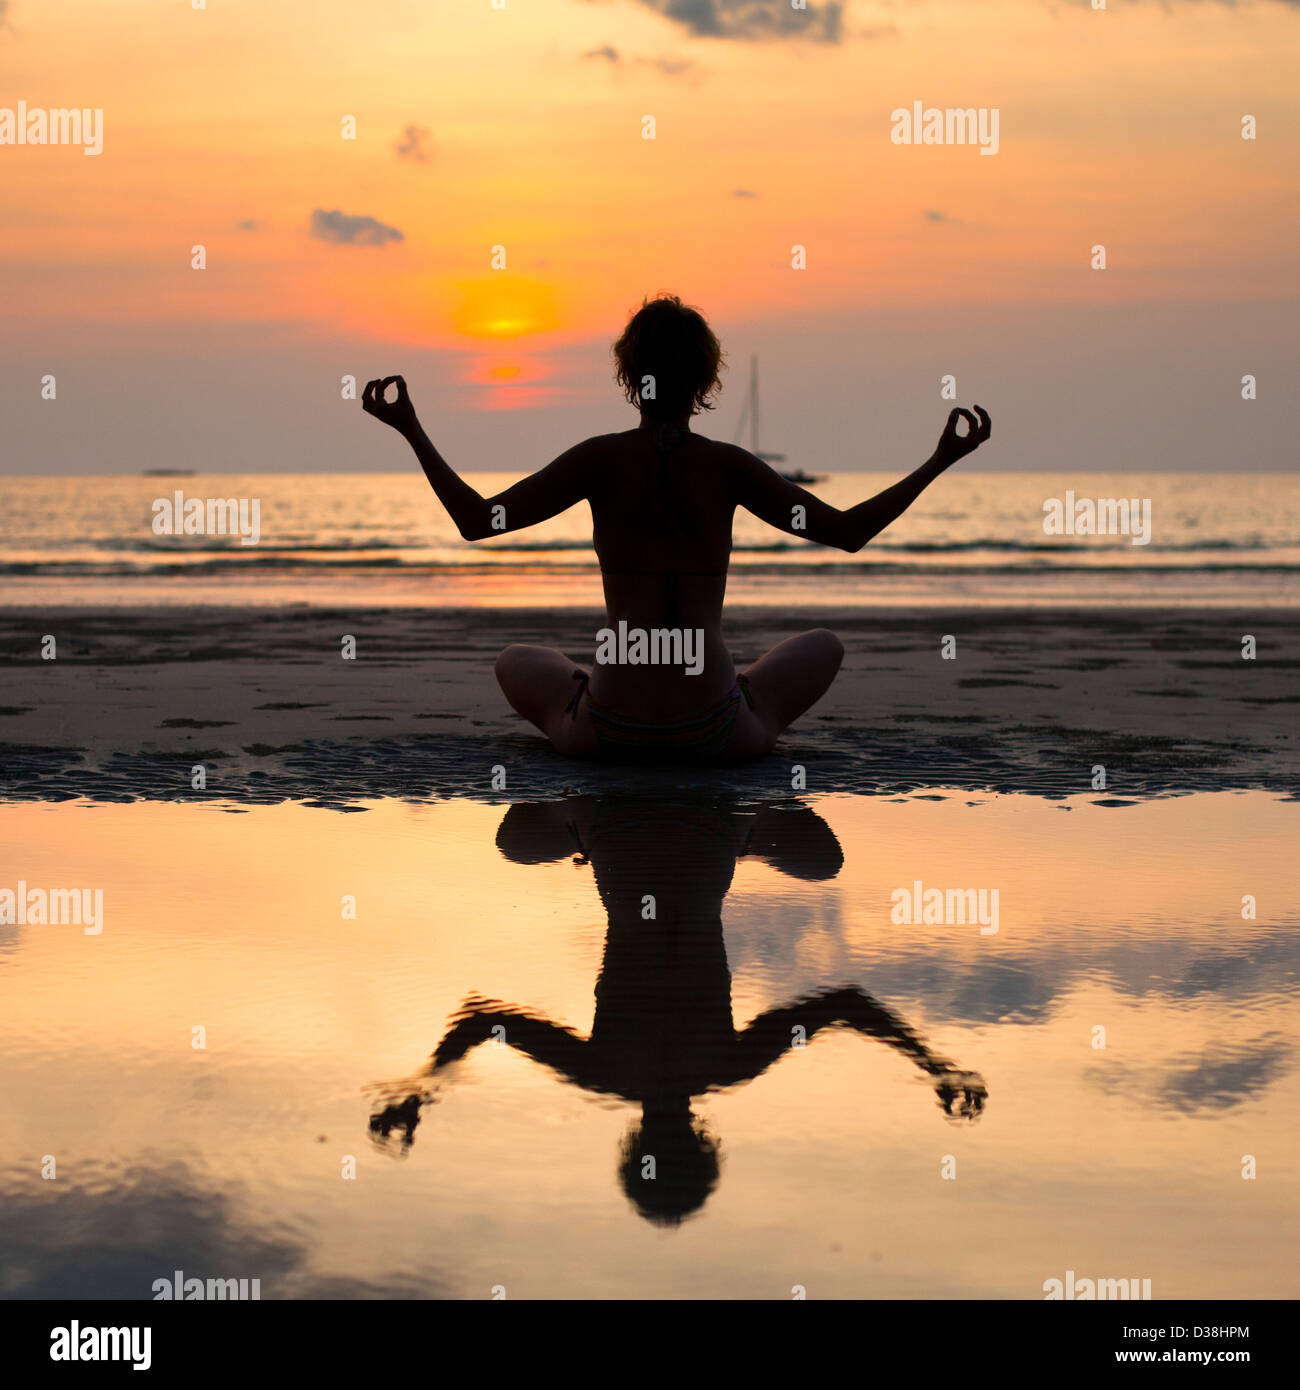 Yoga woman sitting in lotus pose on the beach during sunset, with reflection in water. - Stock Image